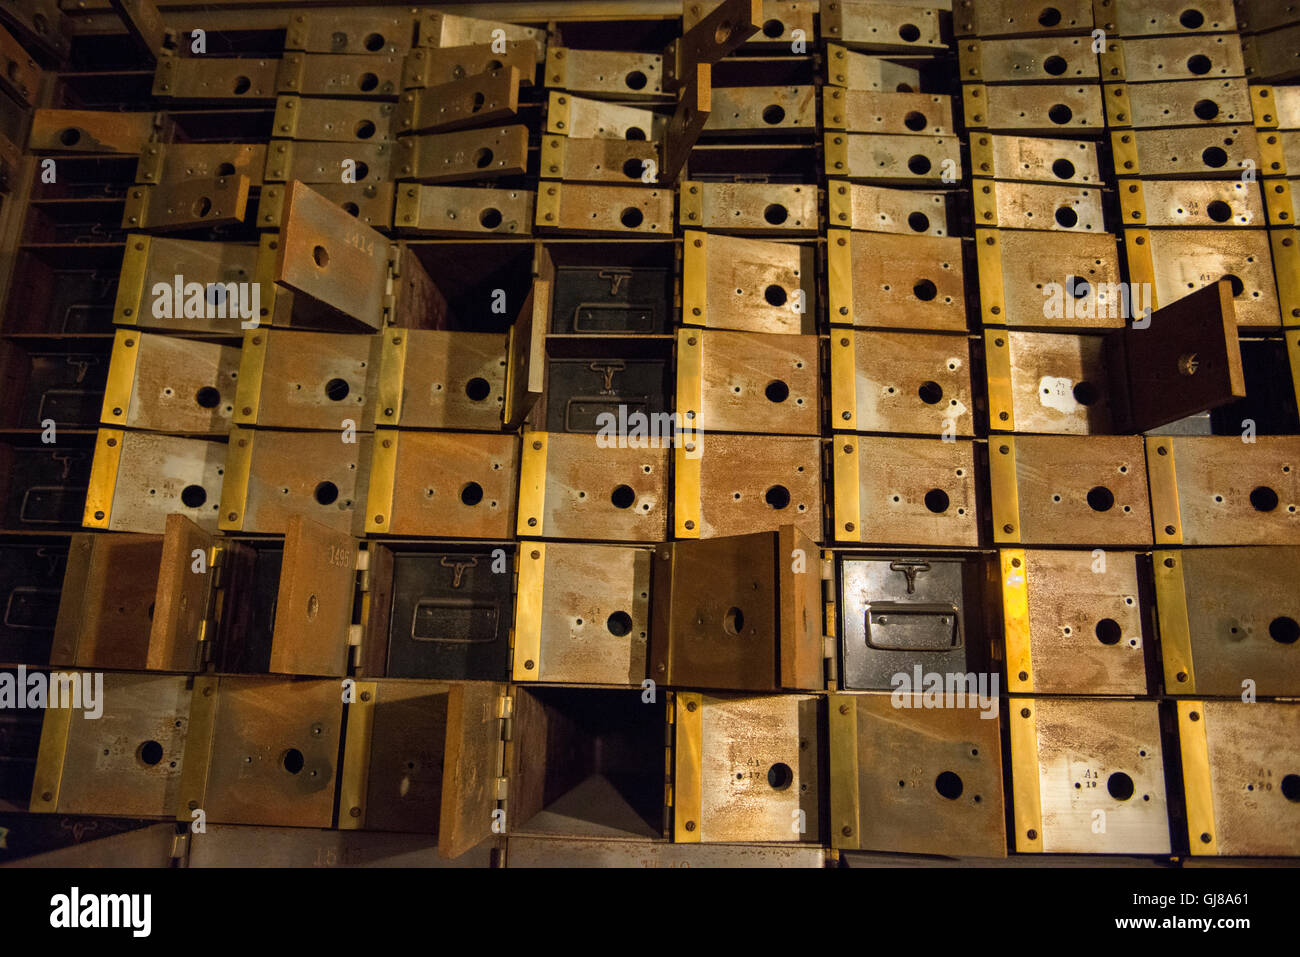 Vintage bank empty bank boxes in a former bank vault. - Stock Image